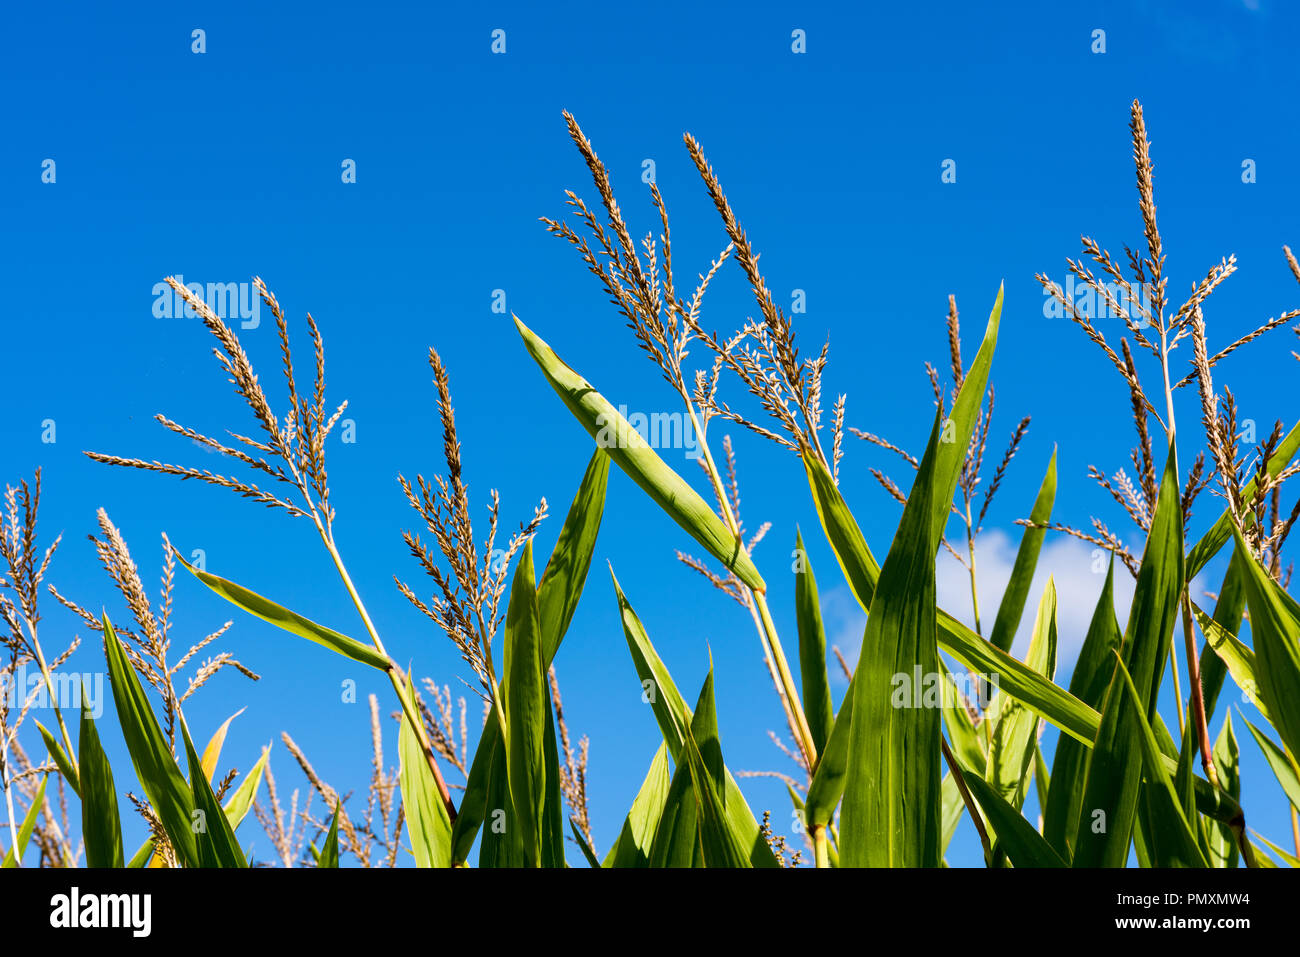 Close up of corn ears at corn plants in late summer in front of bright blue sky. - Stock Image